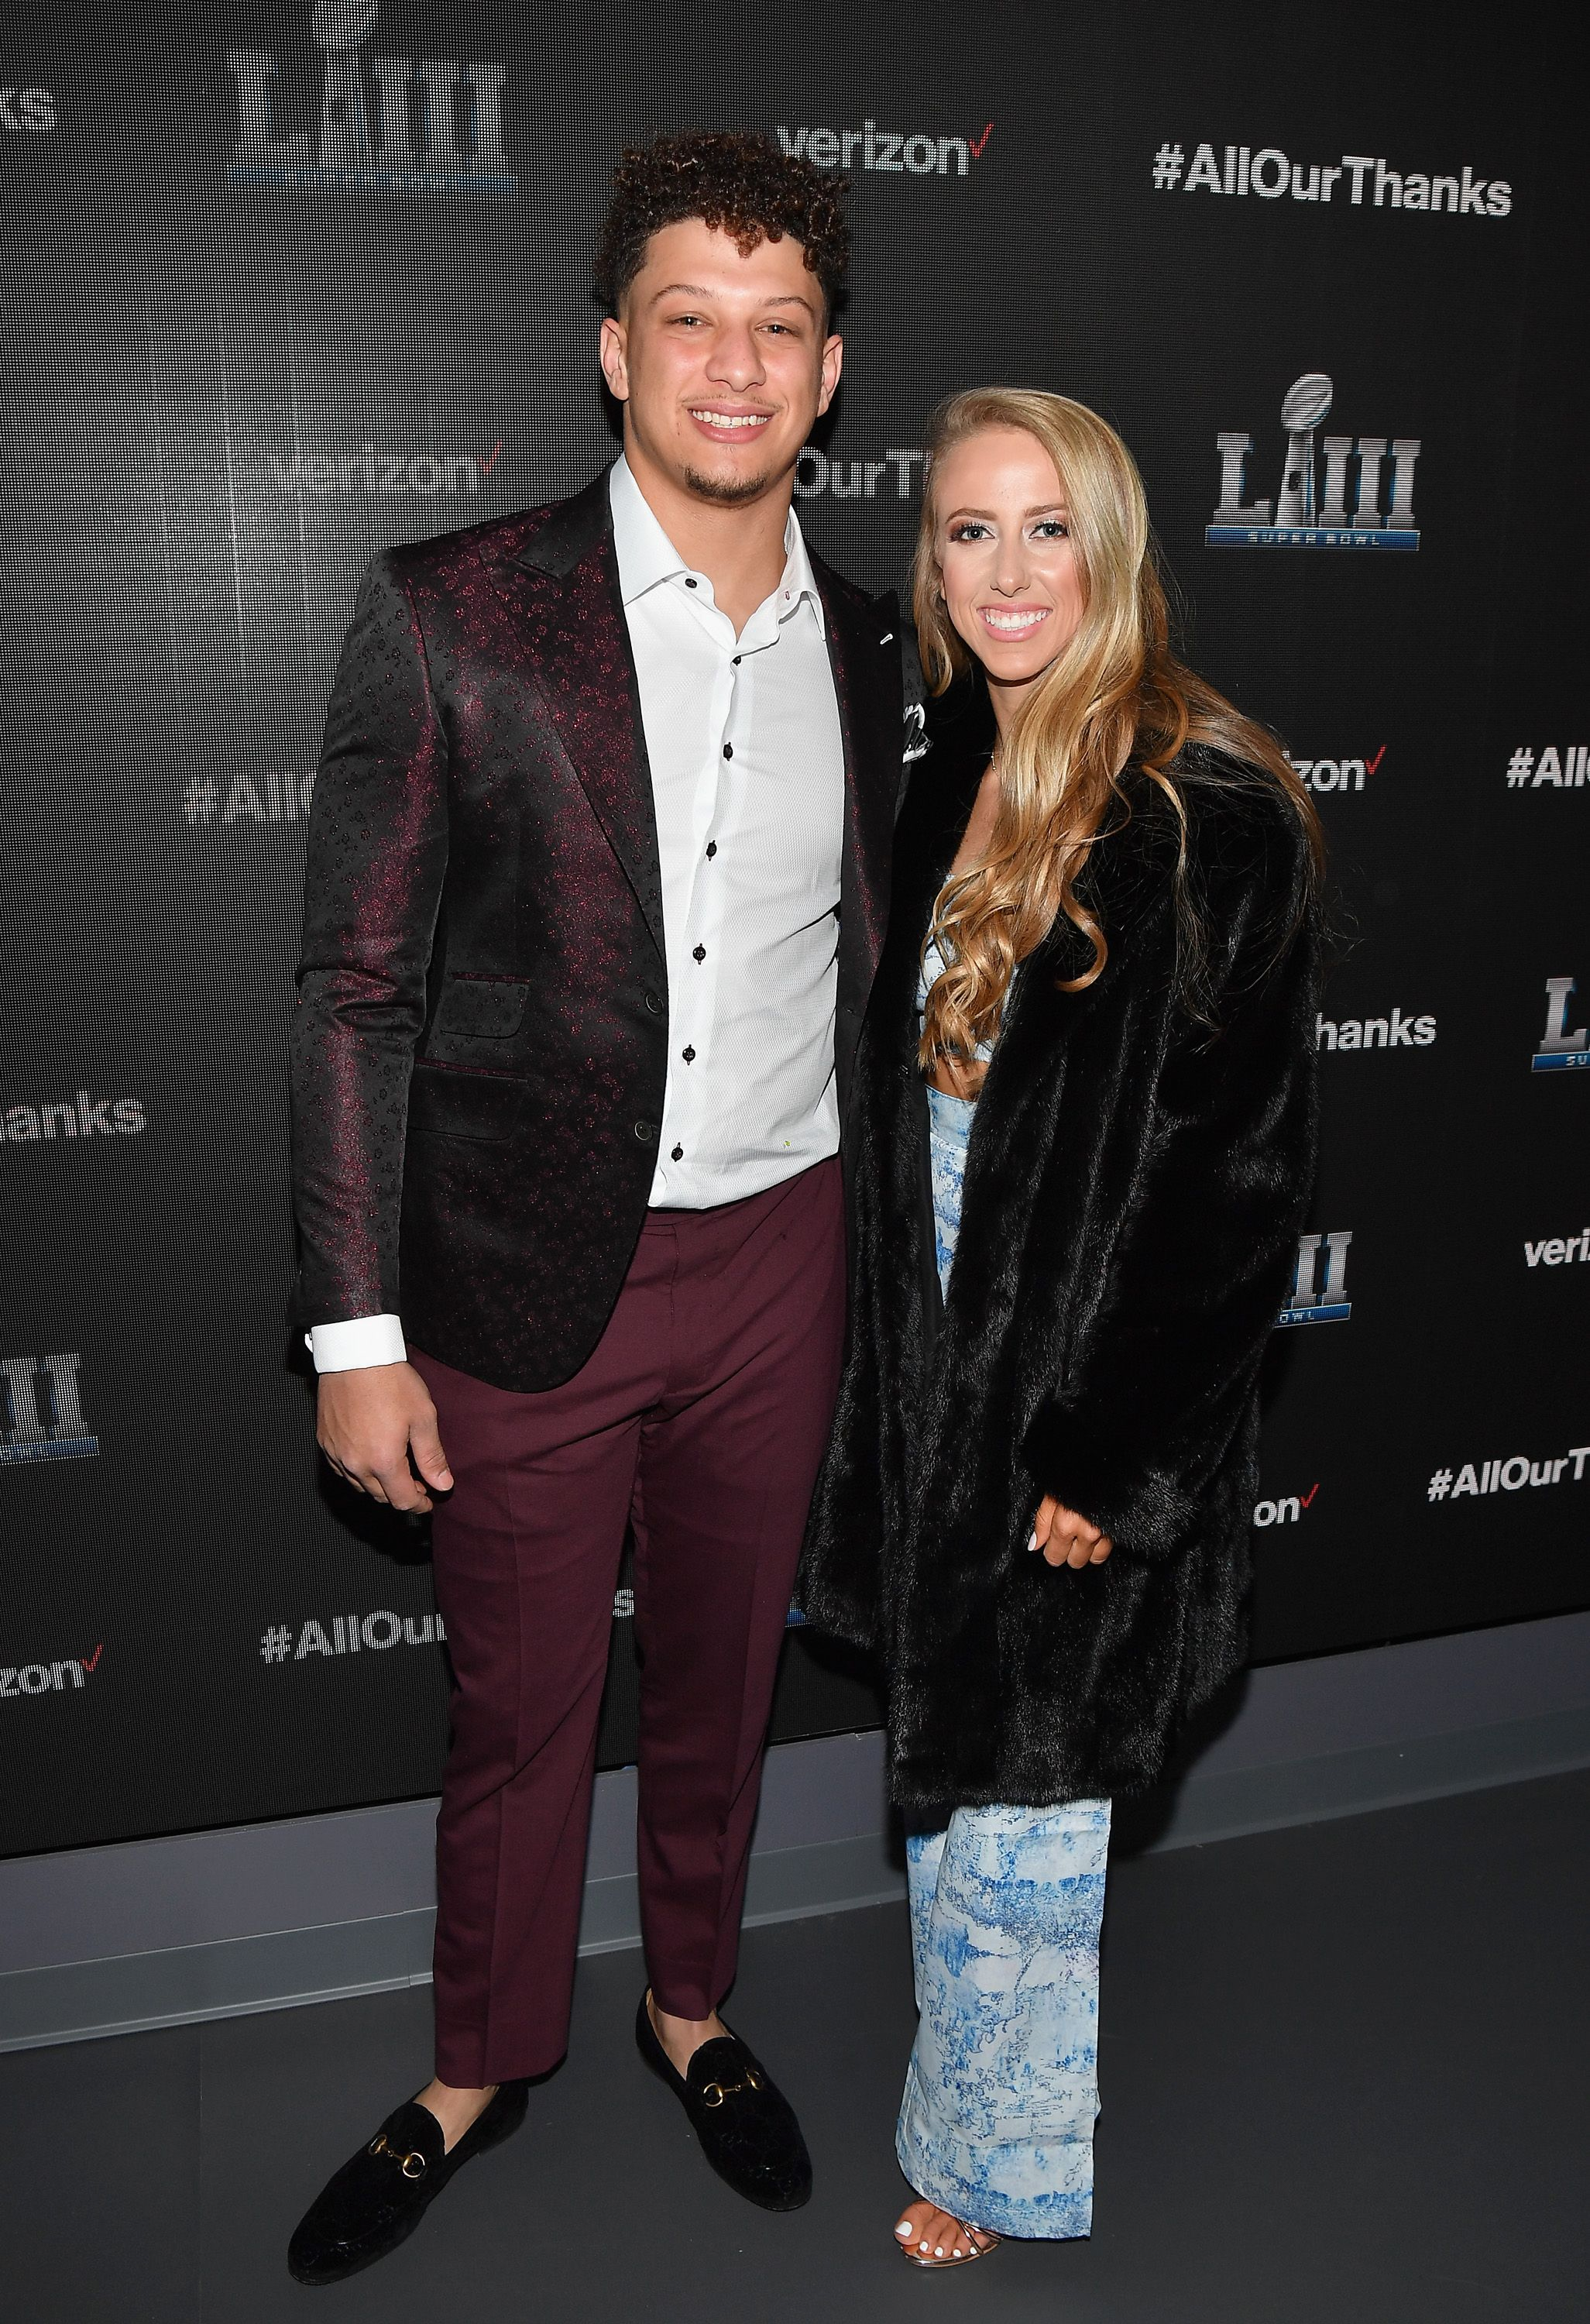 "Patrick Mahomes II and Brittany Matthews during the world premiere event for ""The Team That Wouldn't Be Here"" documentary hosted by Verizon on January 31, 2019. 